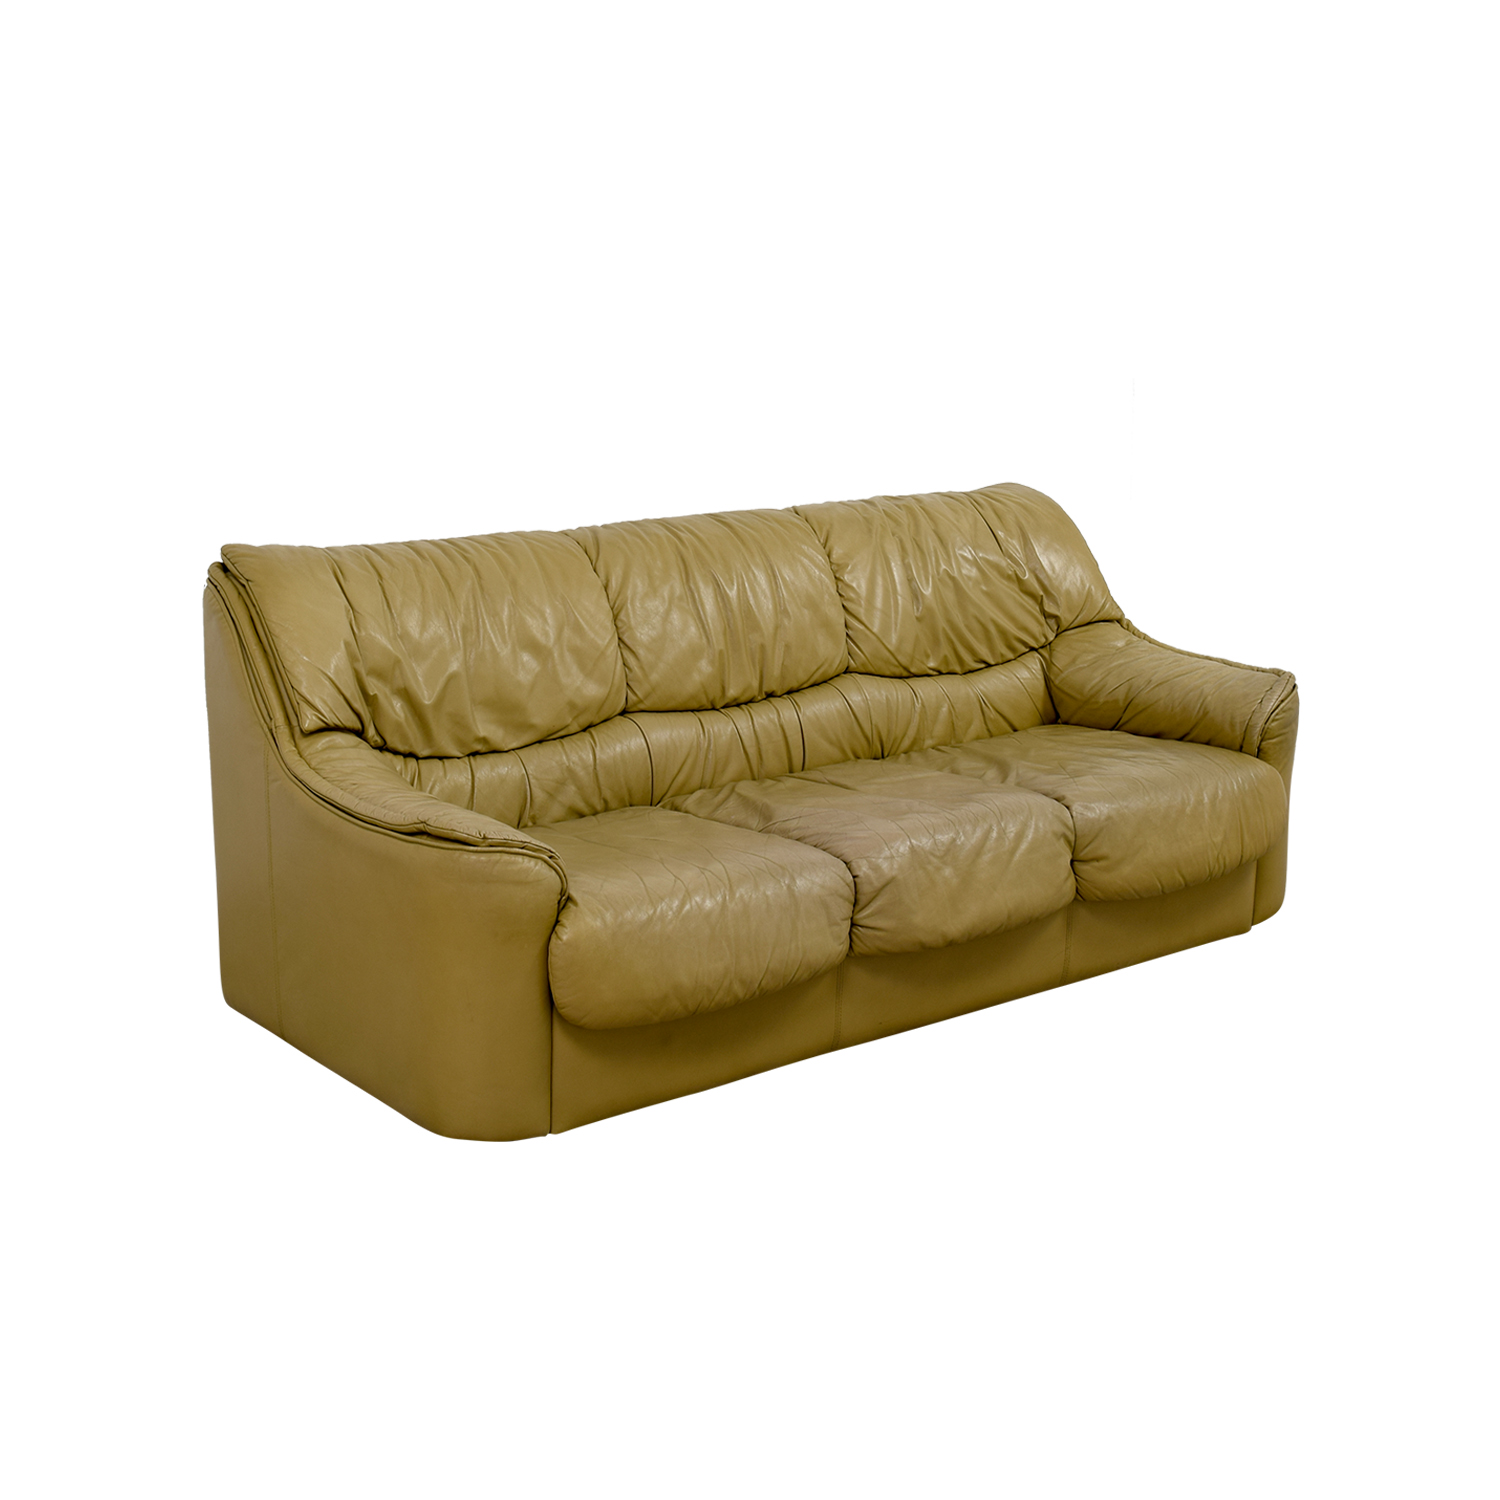 Beige Leather Sofa nj